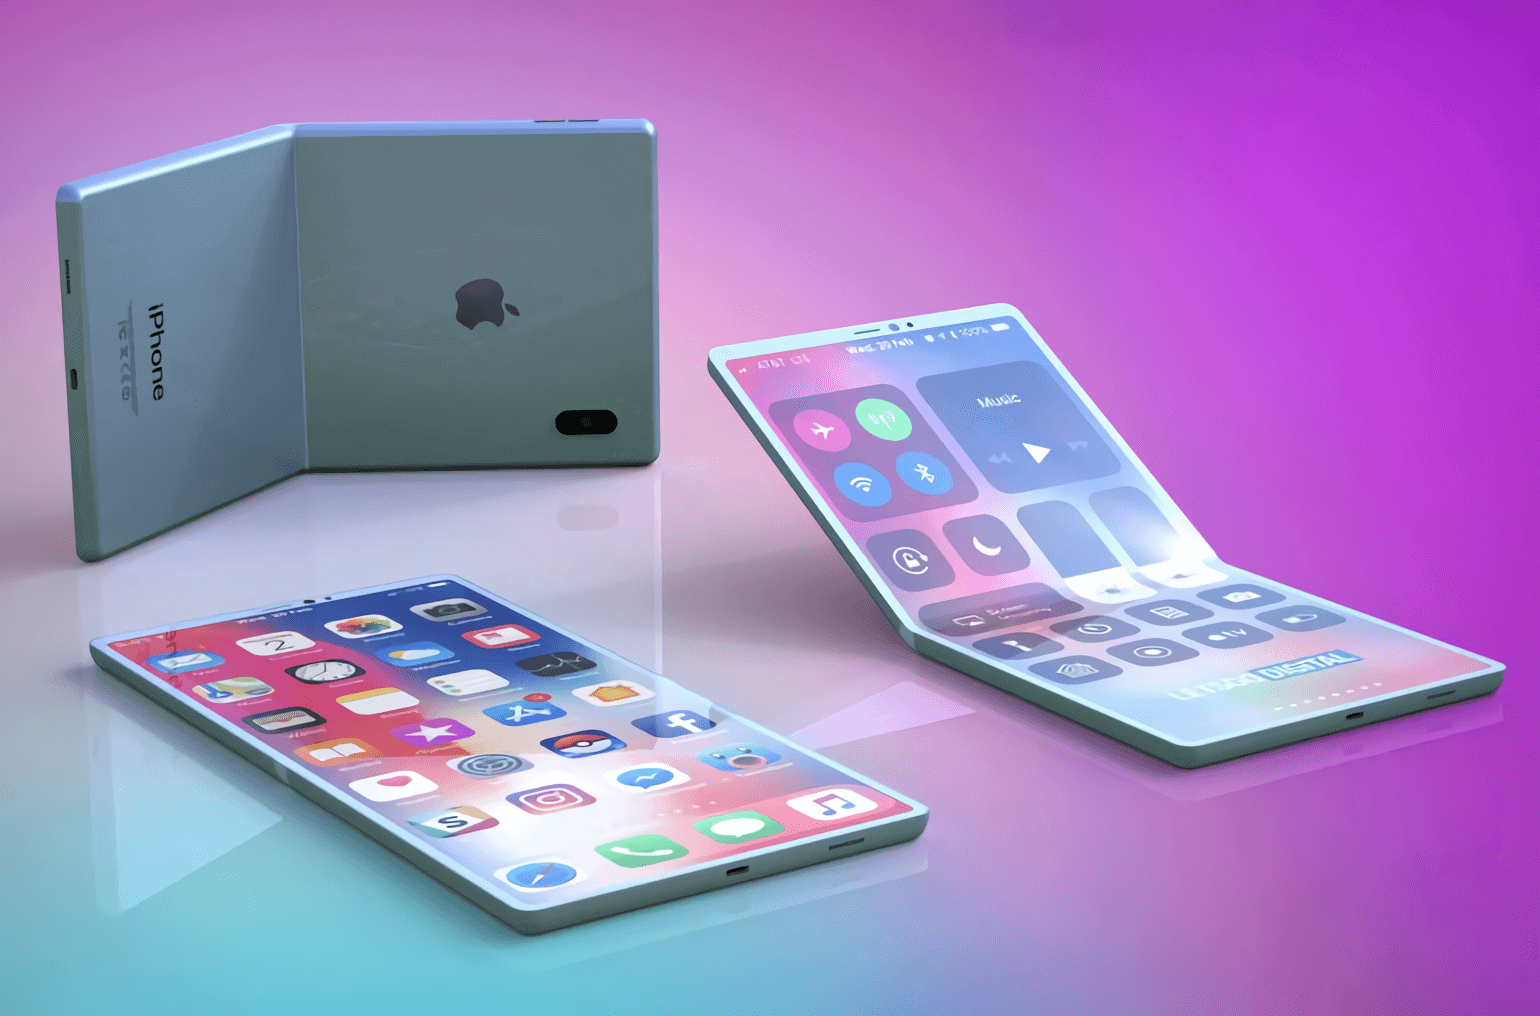 Apple S Foldable Phone Patent Does Not Guarantee We Will See More Bending Iphones